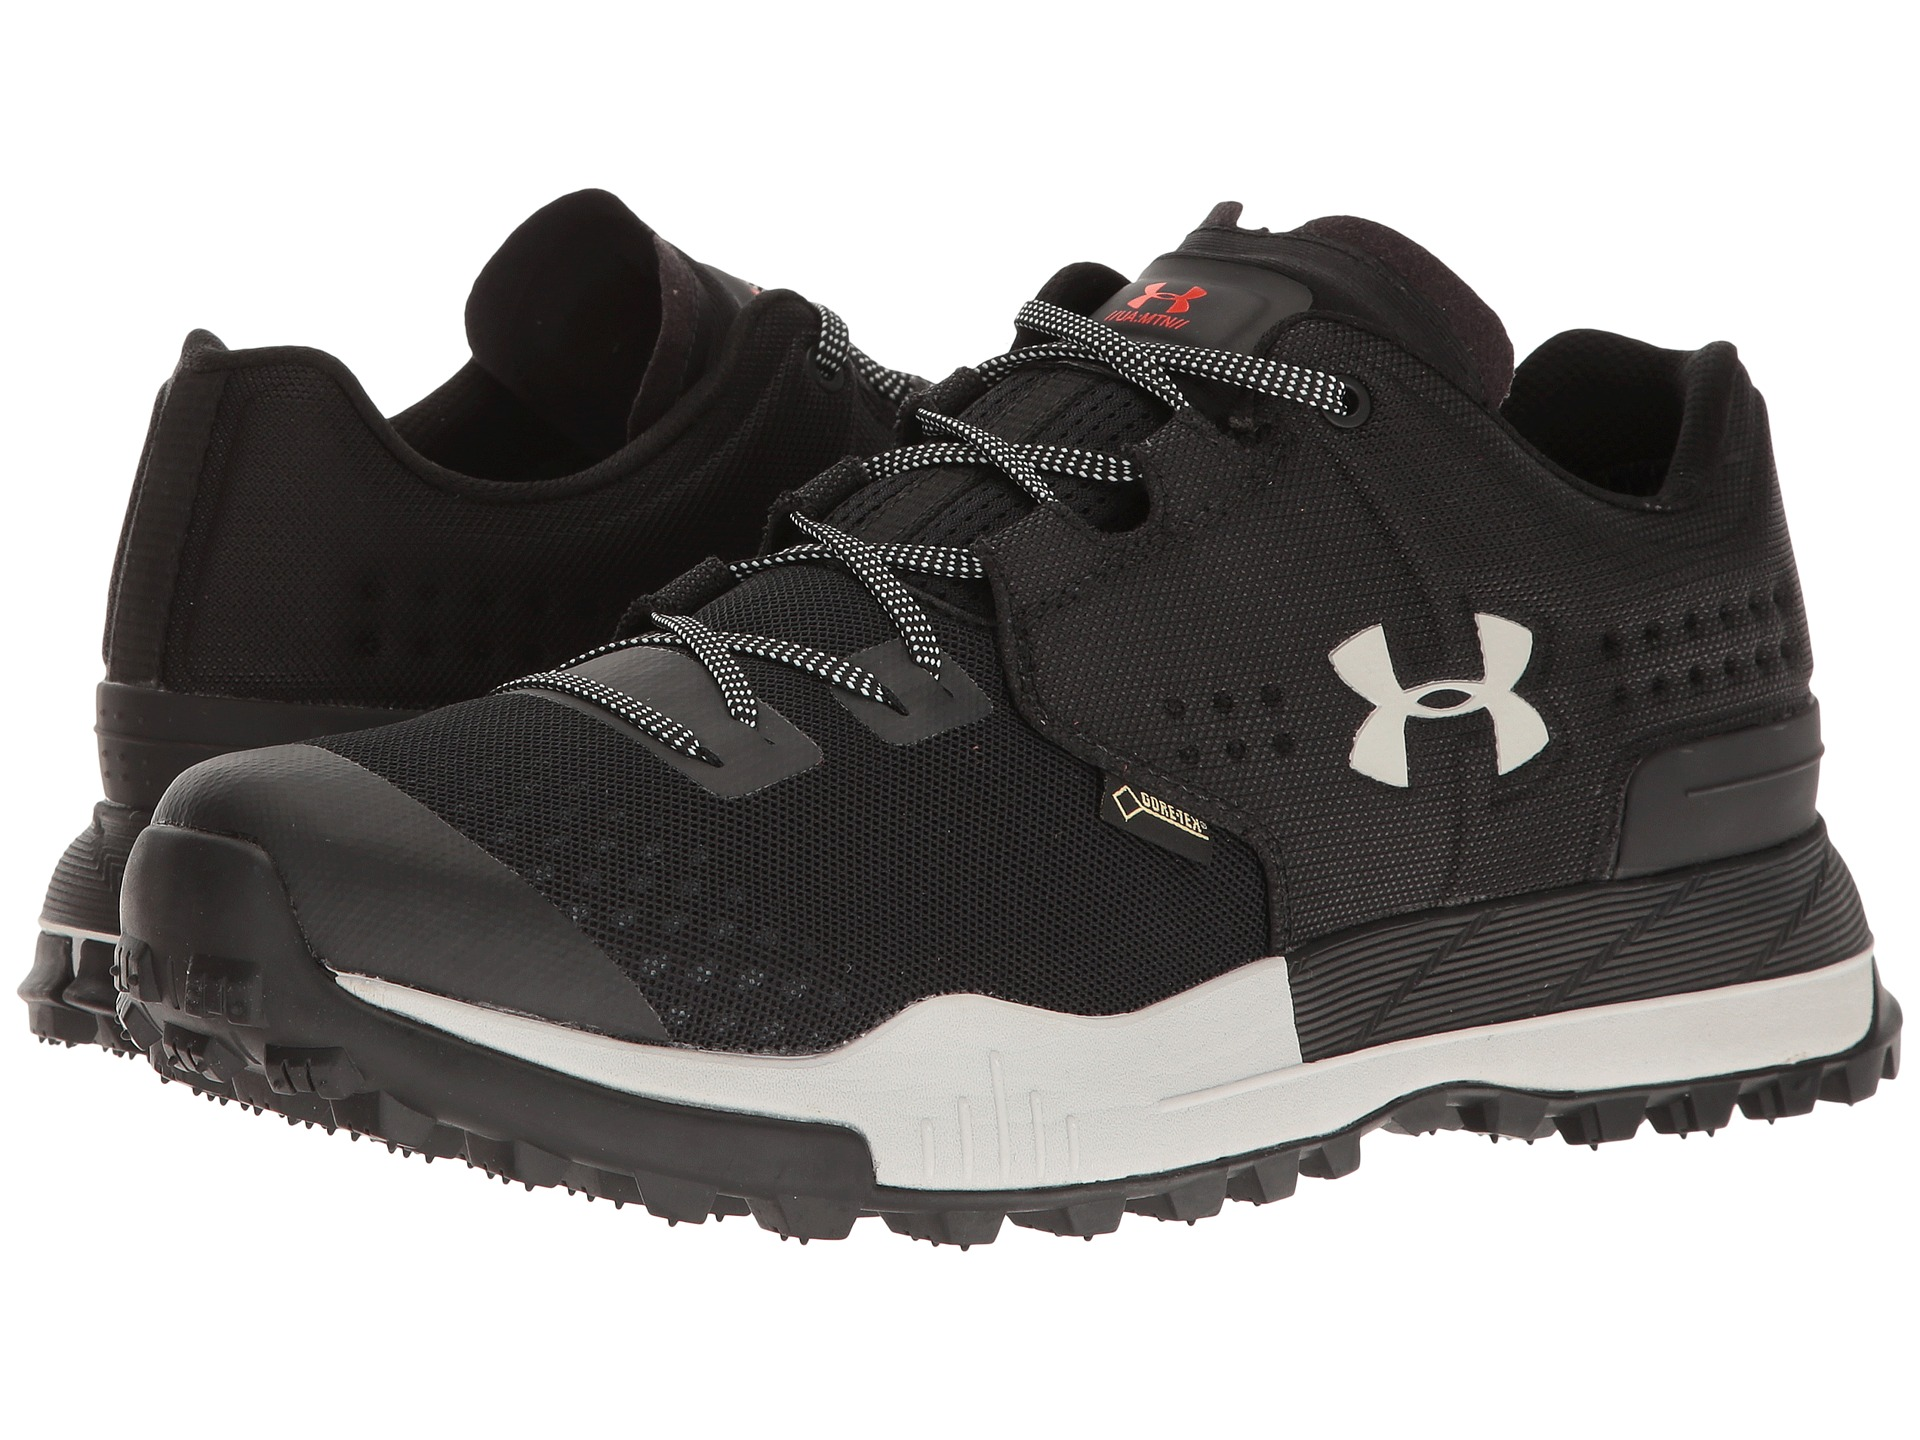 under armor shoes for men cheap   OFF56% The Largest Catalog Discounts a9fb3742e